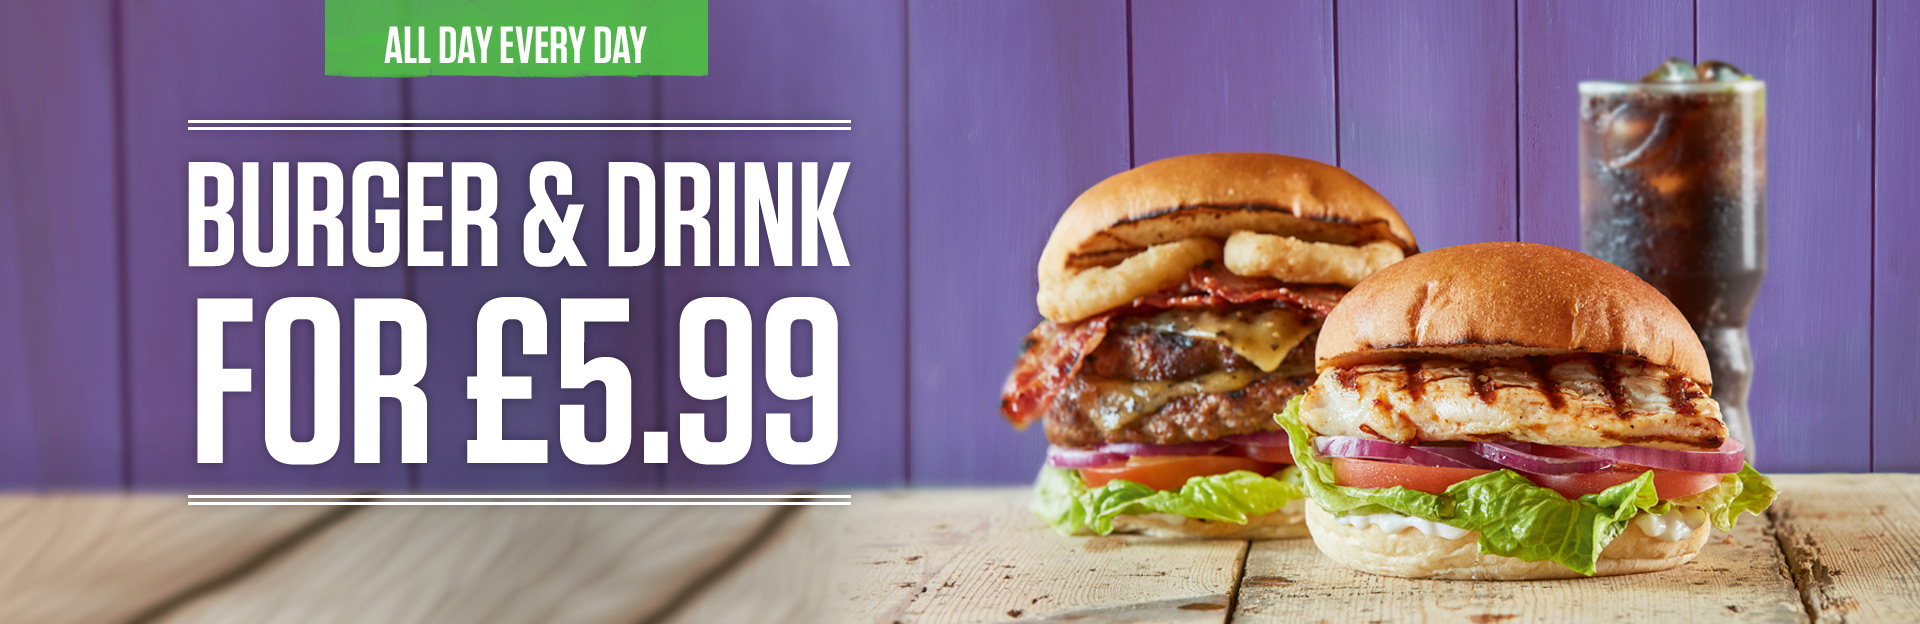 Burger and Drink Deal at The Friendly Forester